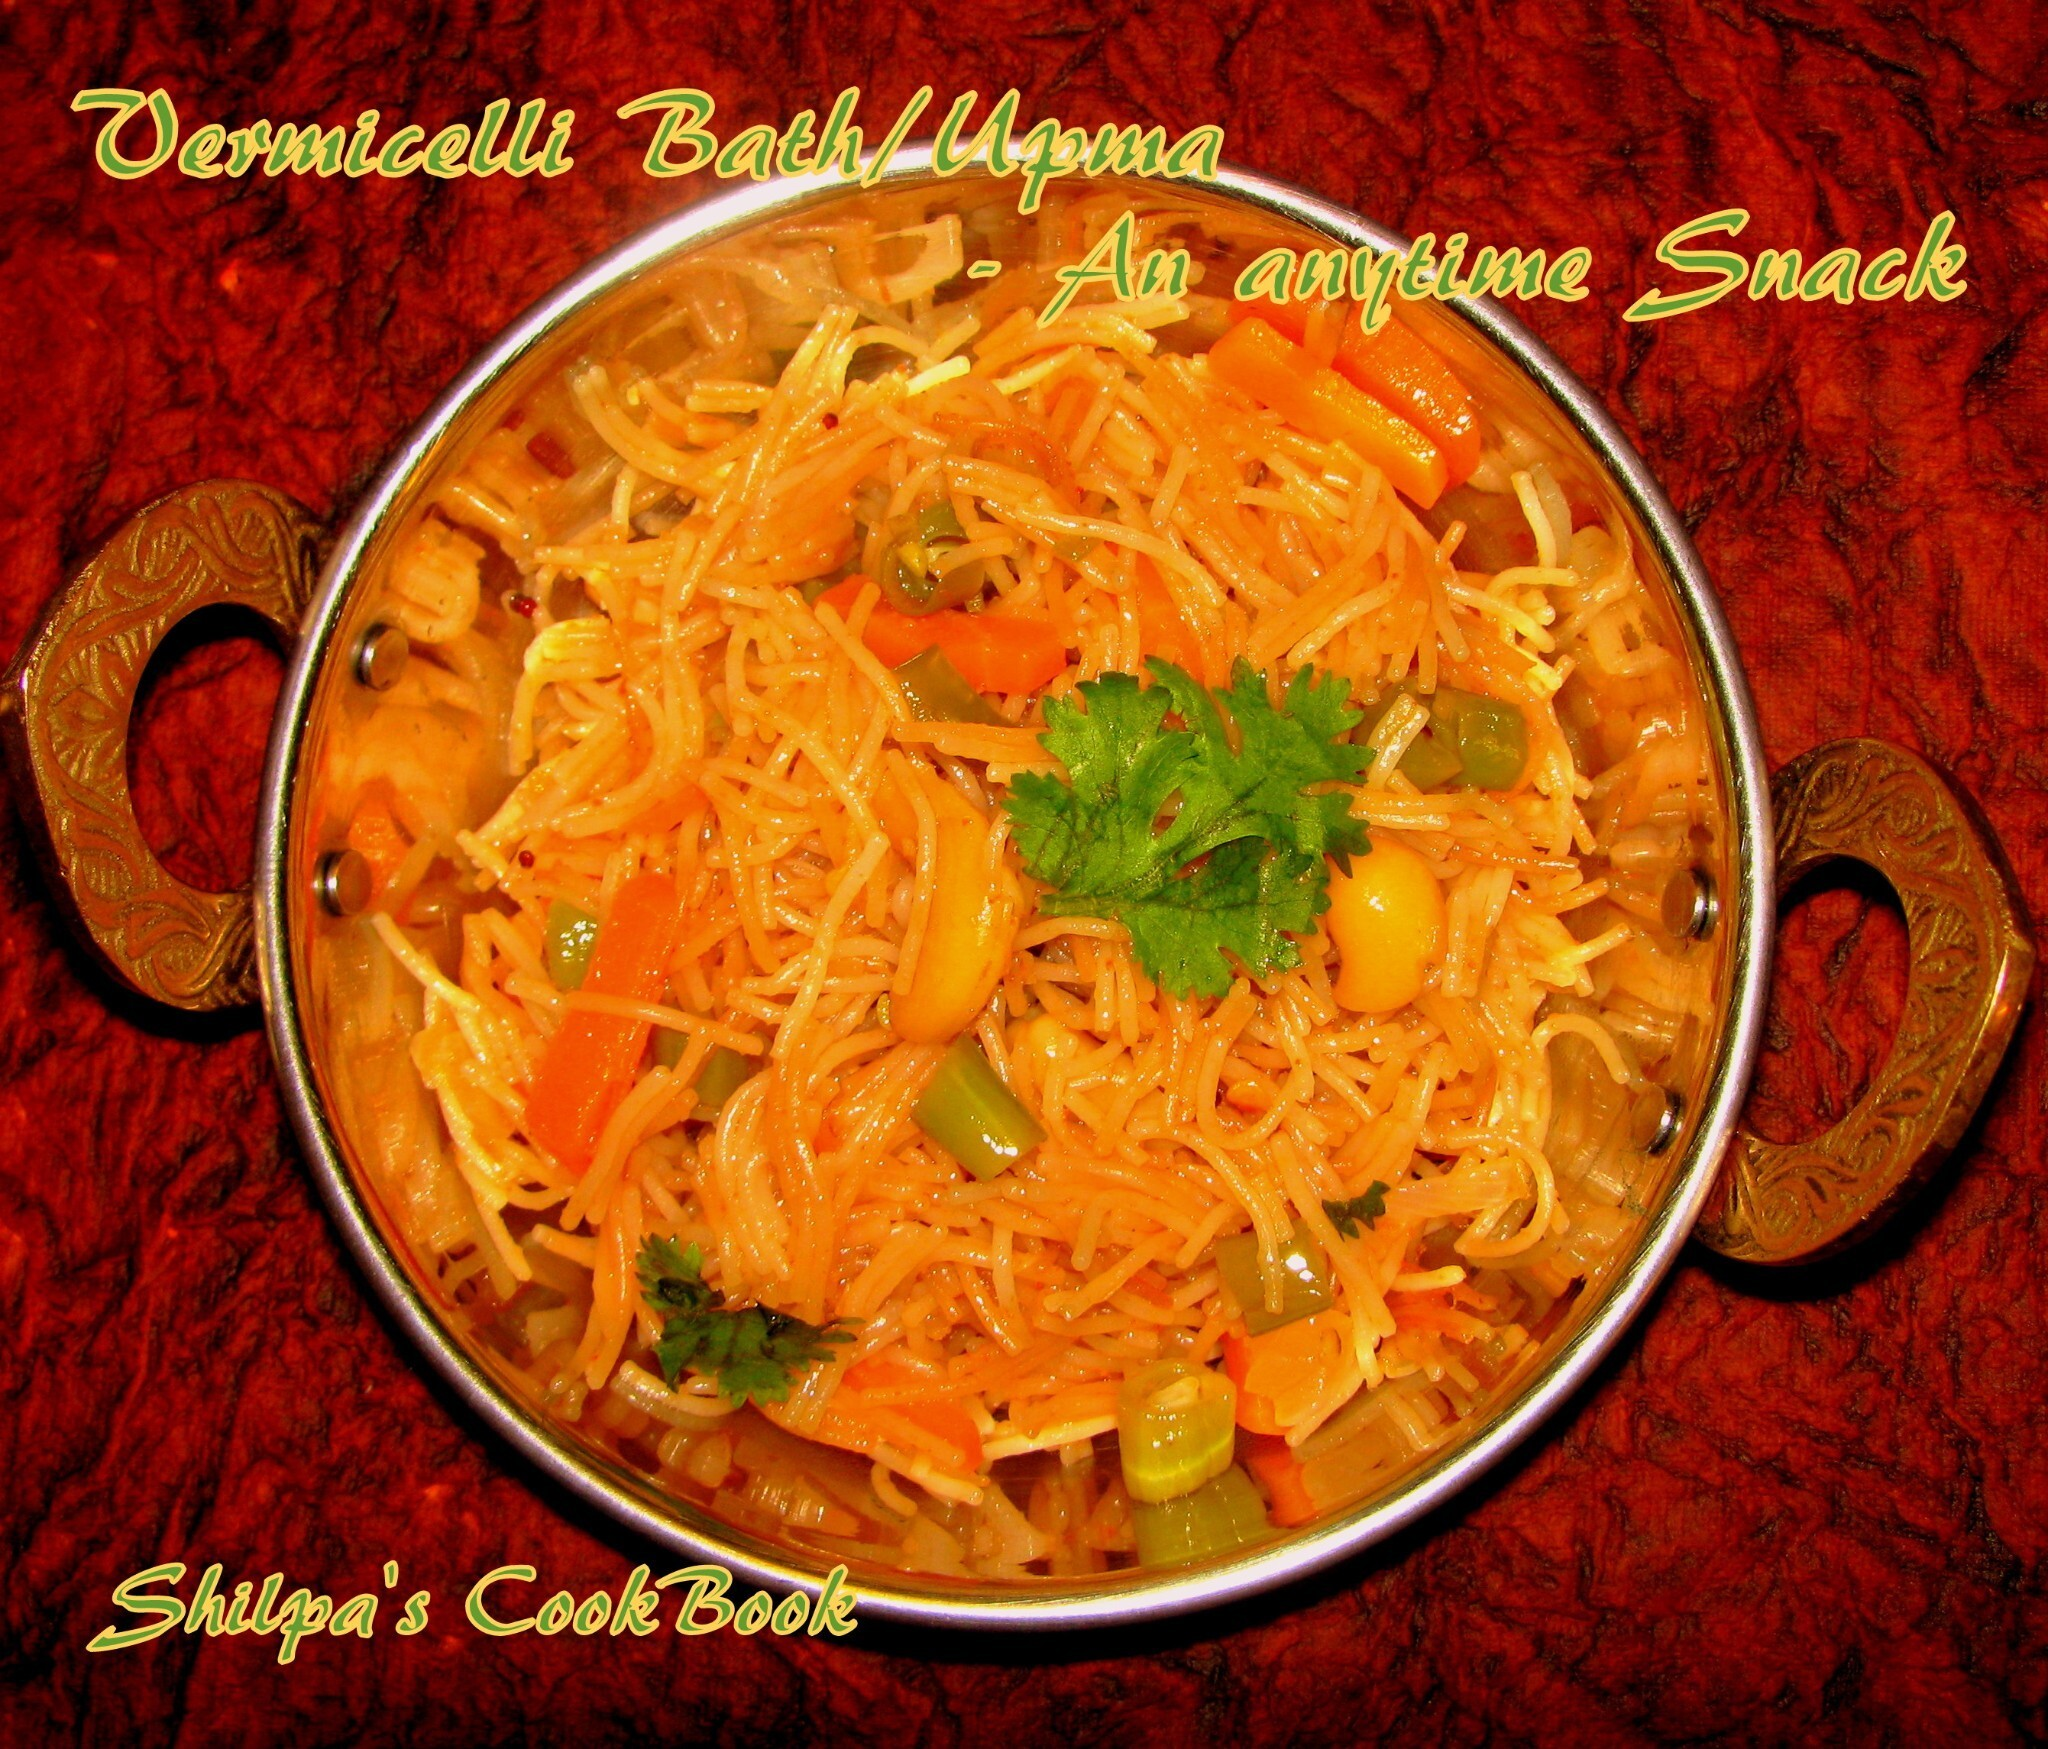 Vermicelli Bath - An anytime Snack